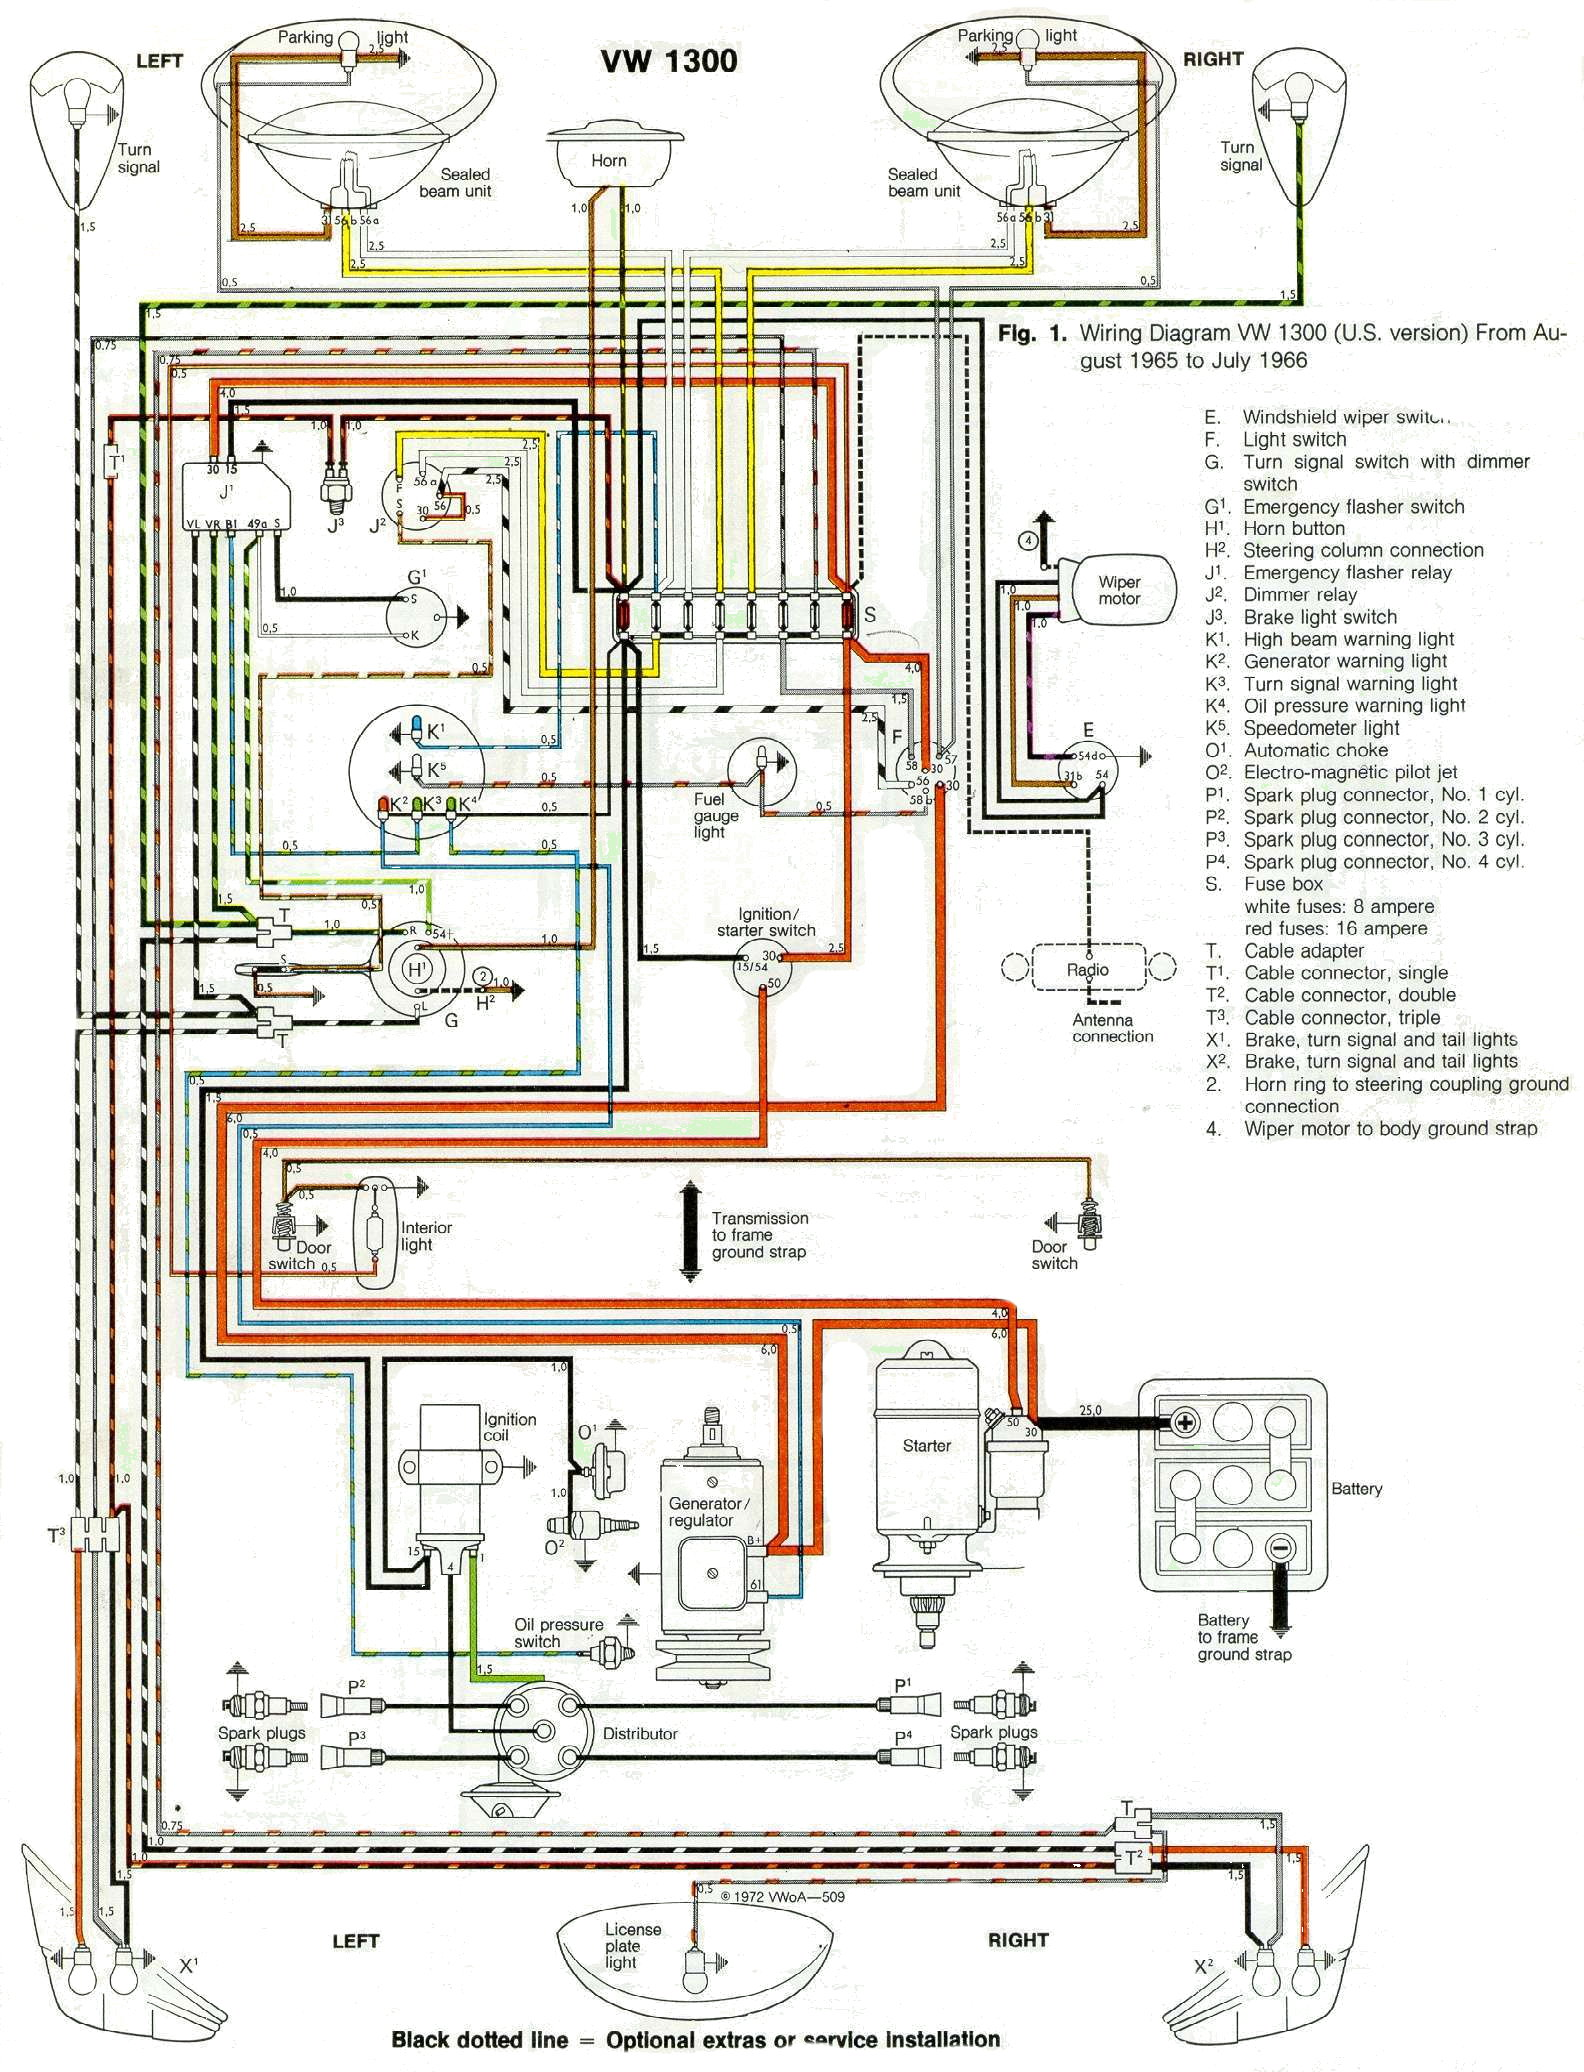 1966 Wiring wiring diagrams \u2022 j squared co evans wiring harness at gsmportal.co